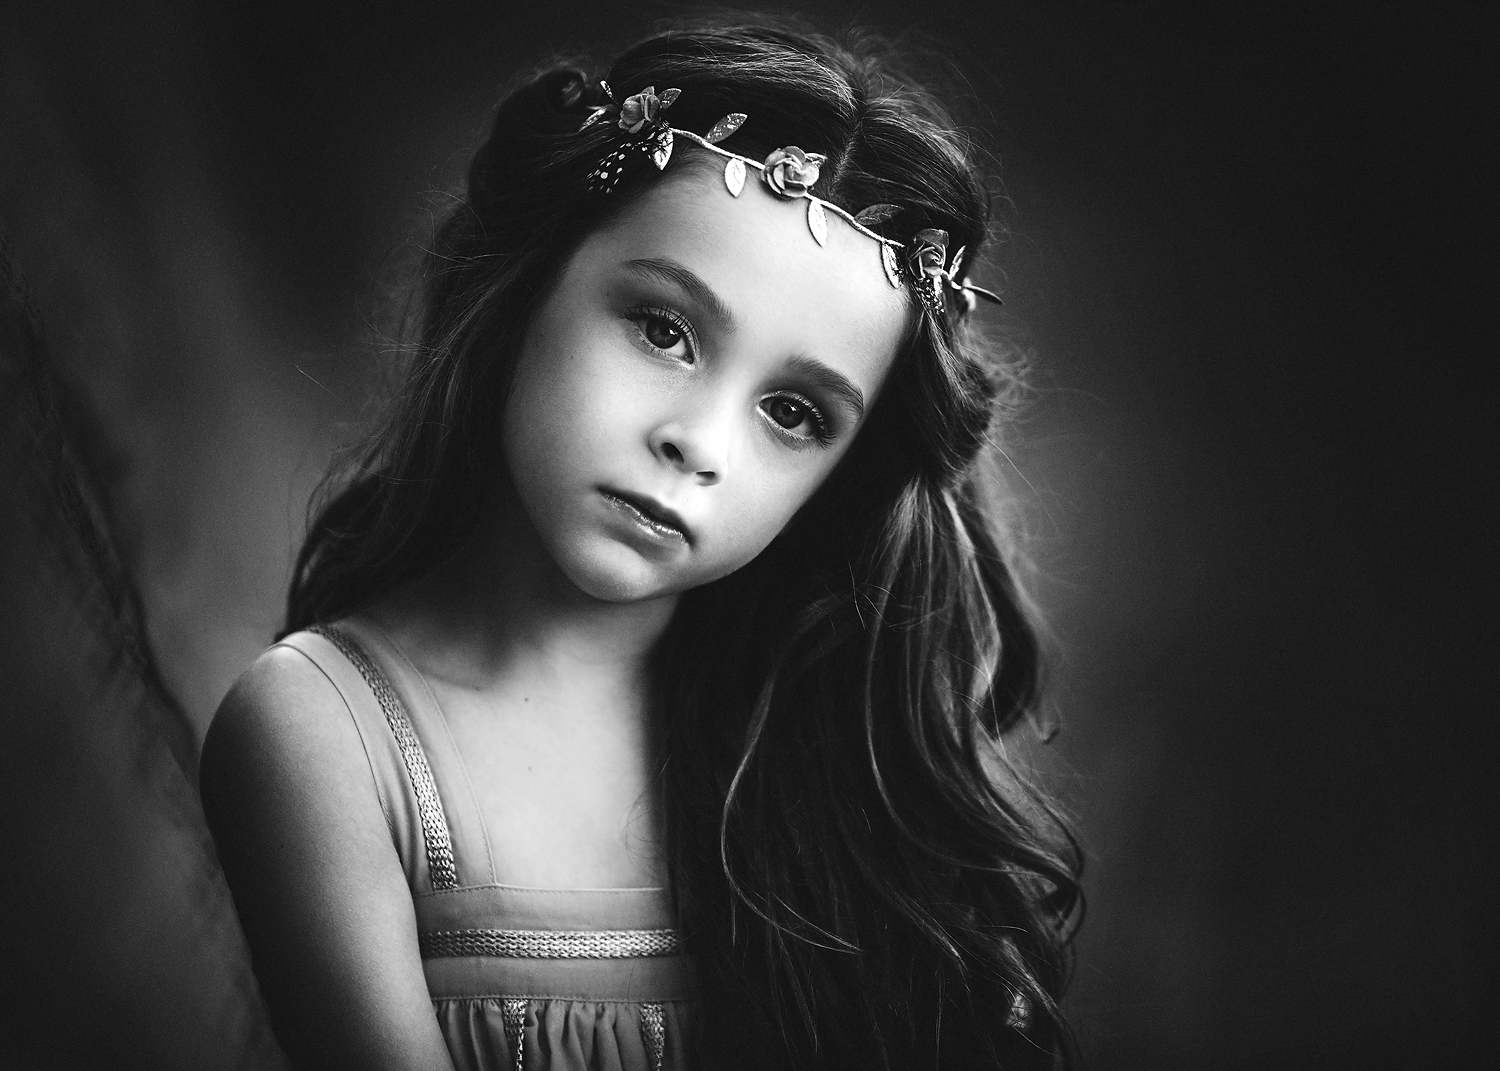 Fine art film black and white photoshop action by lisa holloway ljholloway photography is a